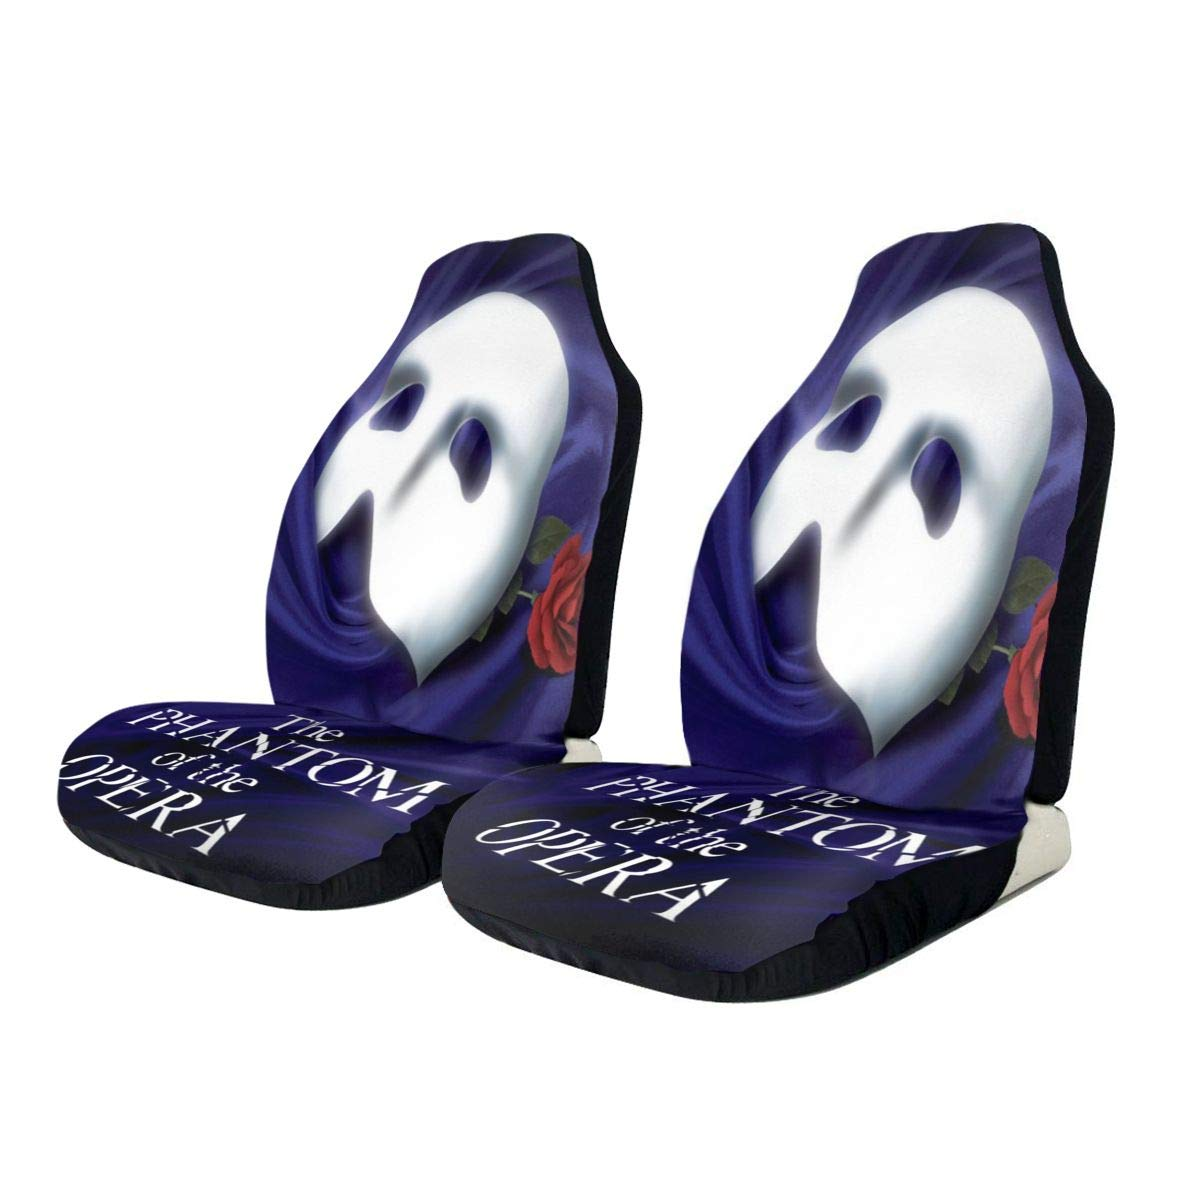 Midbeauty Phantom of The Opera Rose Front Car Seat Covers Set Vehicle Seat Protector Car Mat Covers